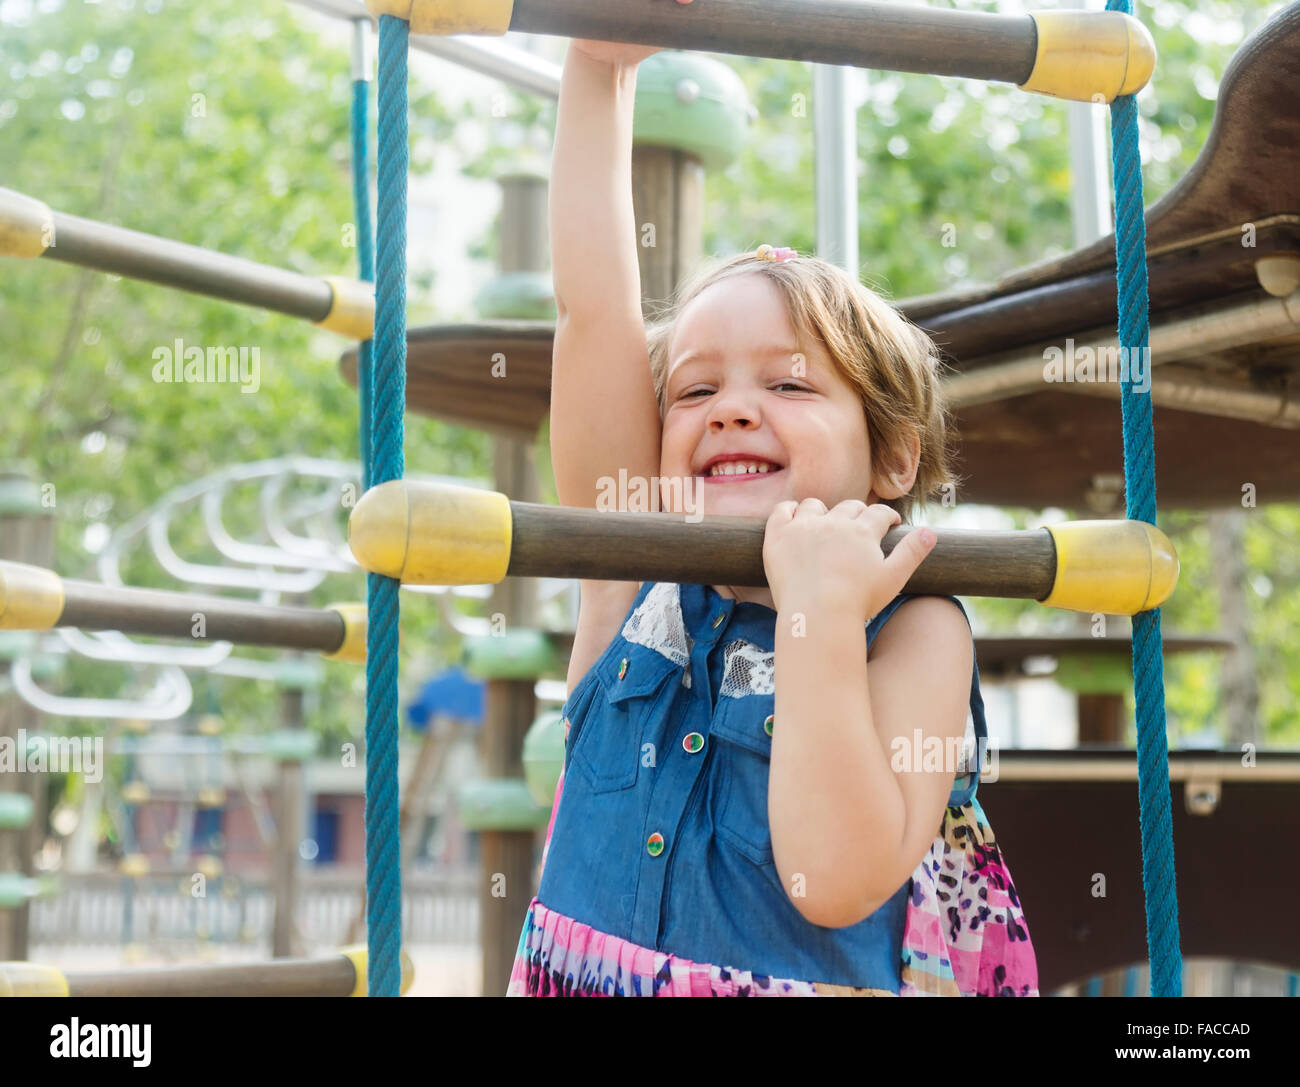 Smiling girl developing dexterity at playground - Stock Image